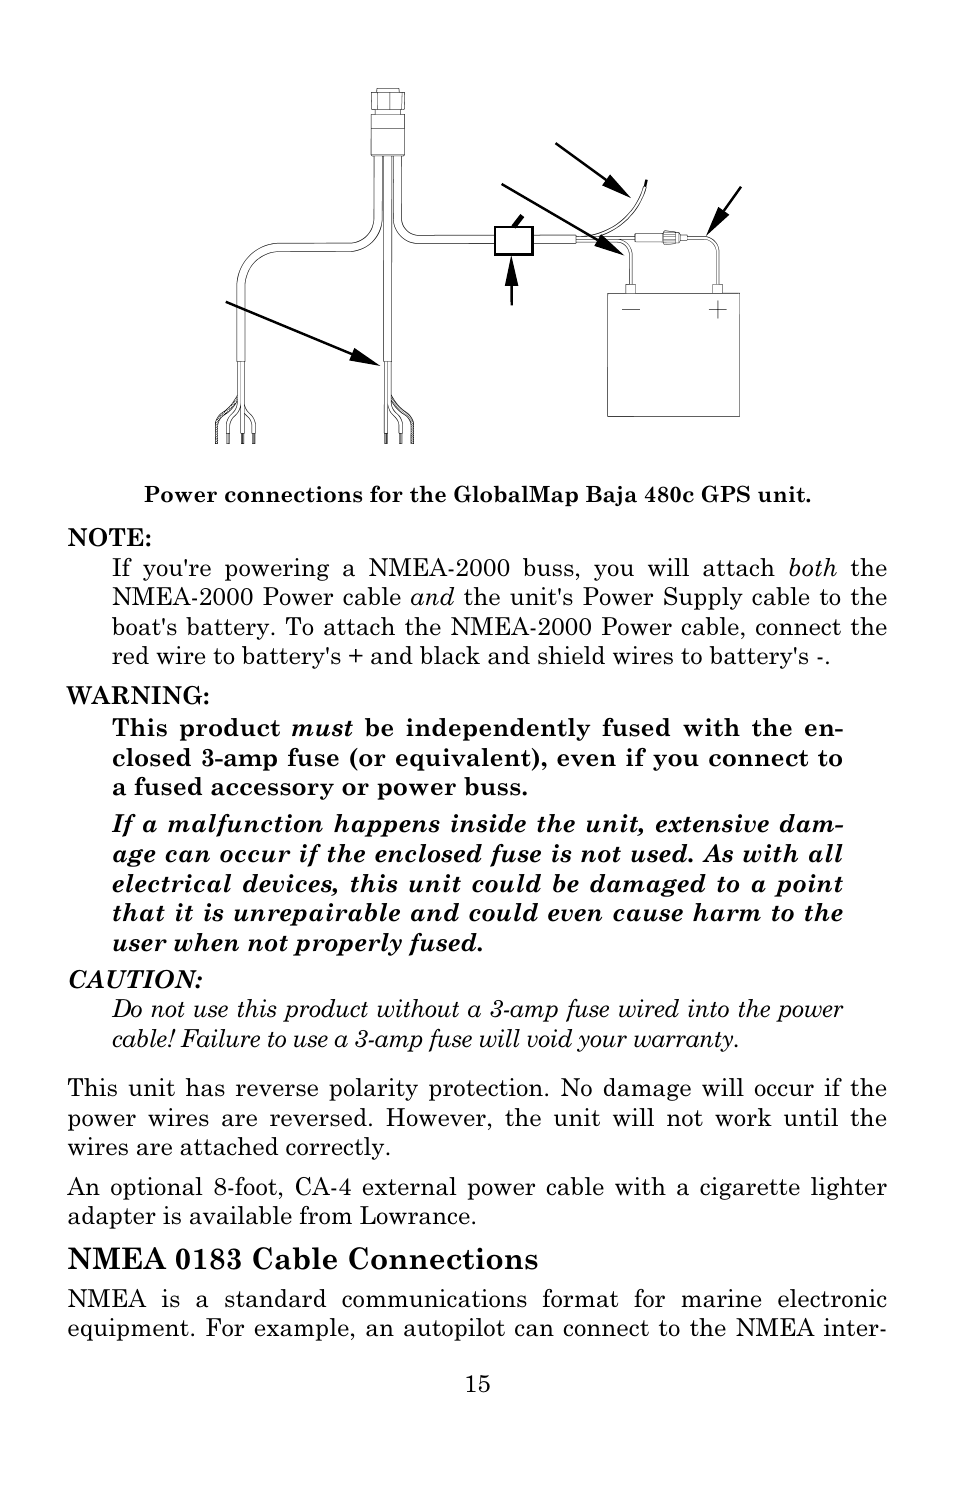 Lowrance Nmea 0183 Wiring Trusted Schematics Diagram Gps Cable Connections Electronic Globalmap